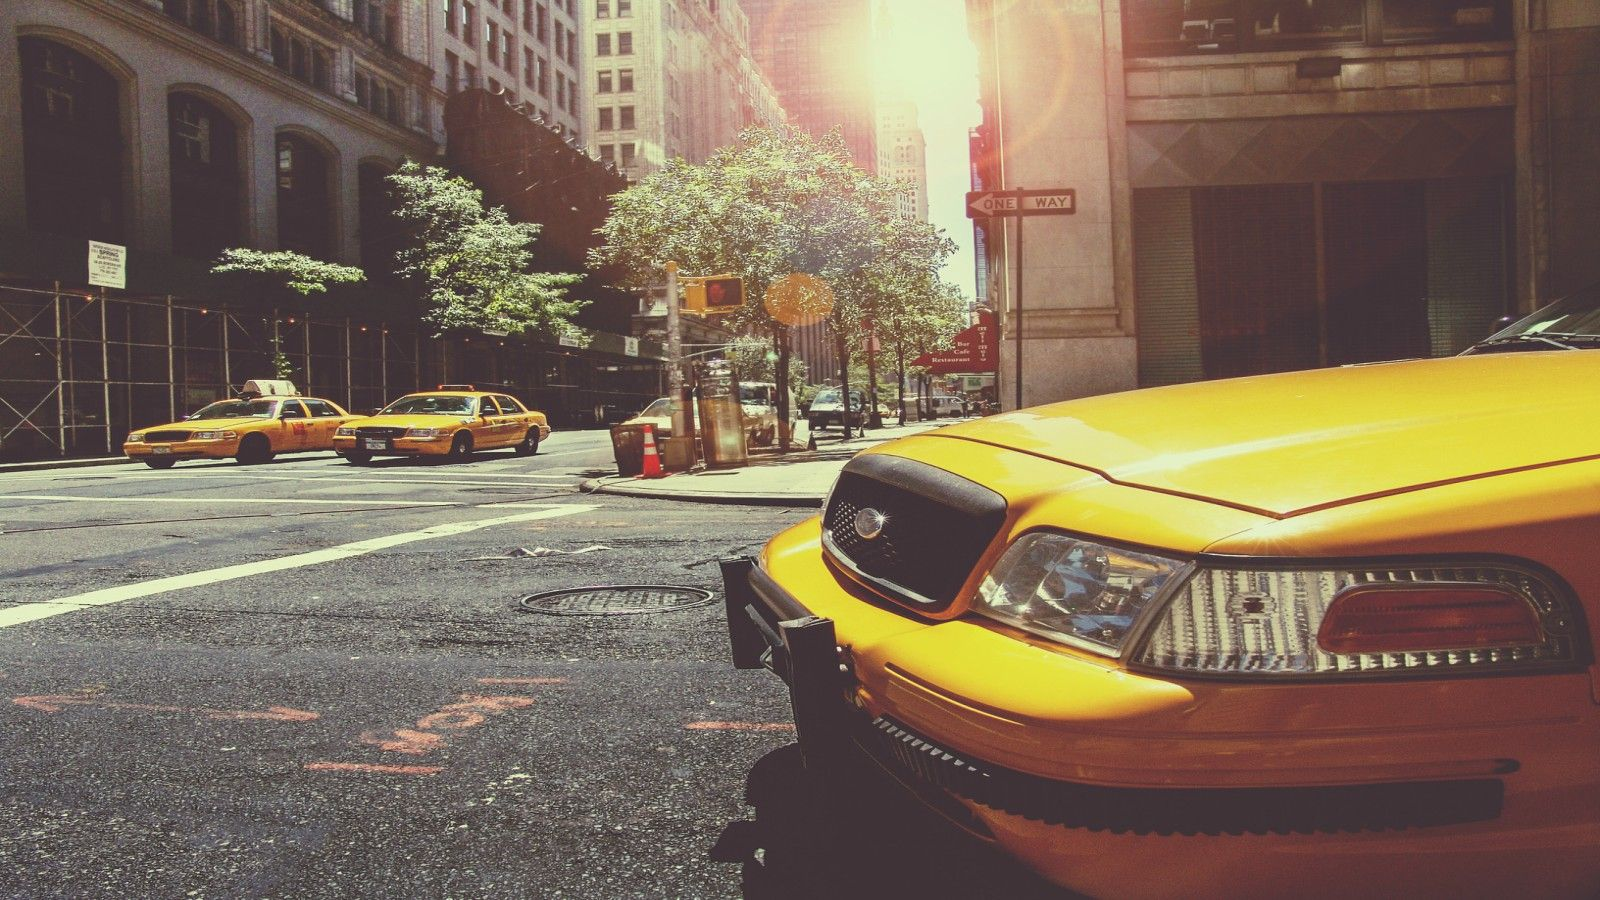 Things to do in Soho - Taxi